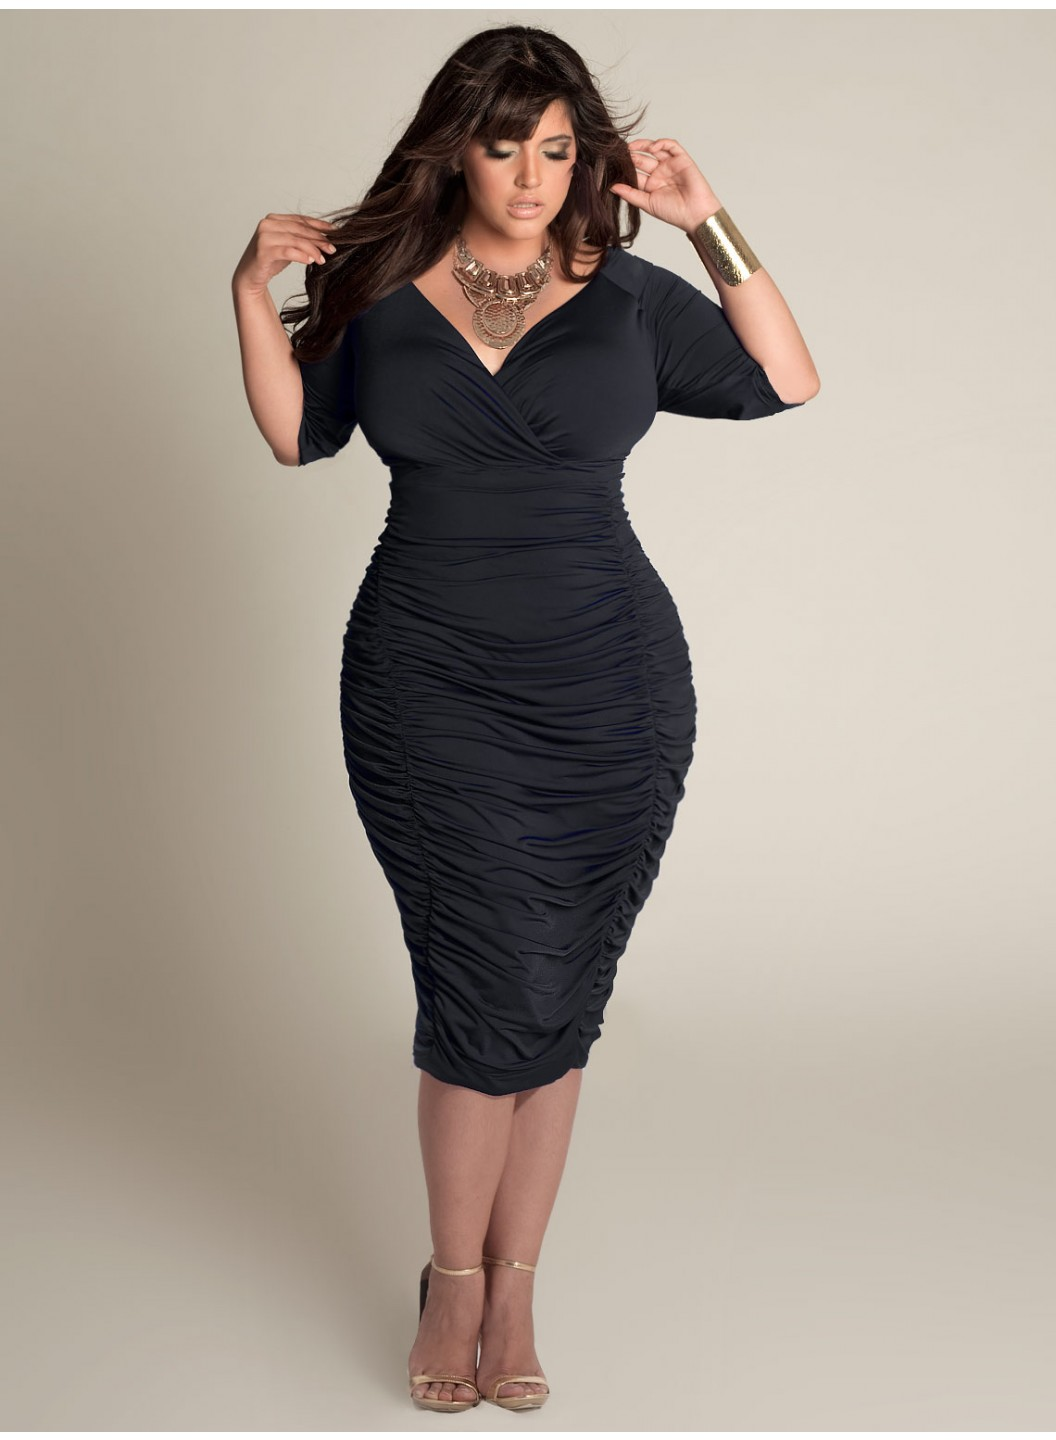 plus size clothes nordstrom